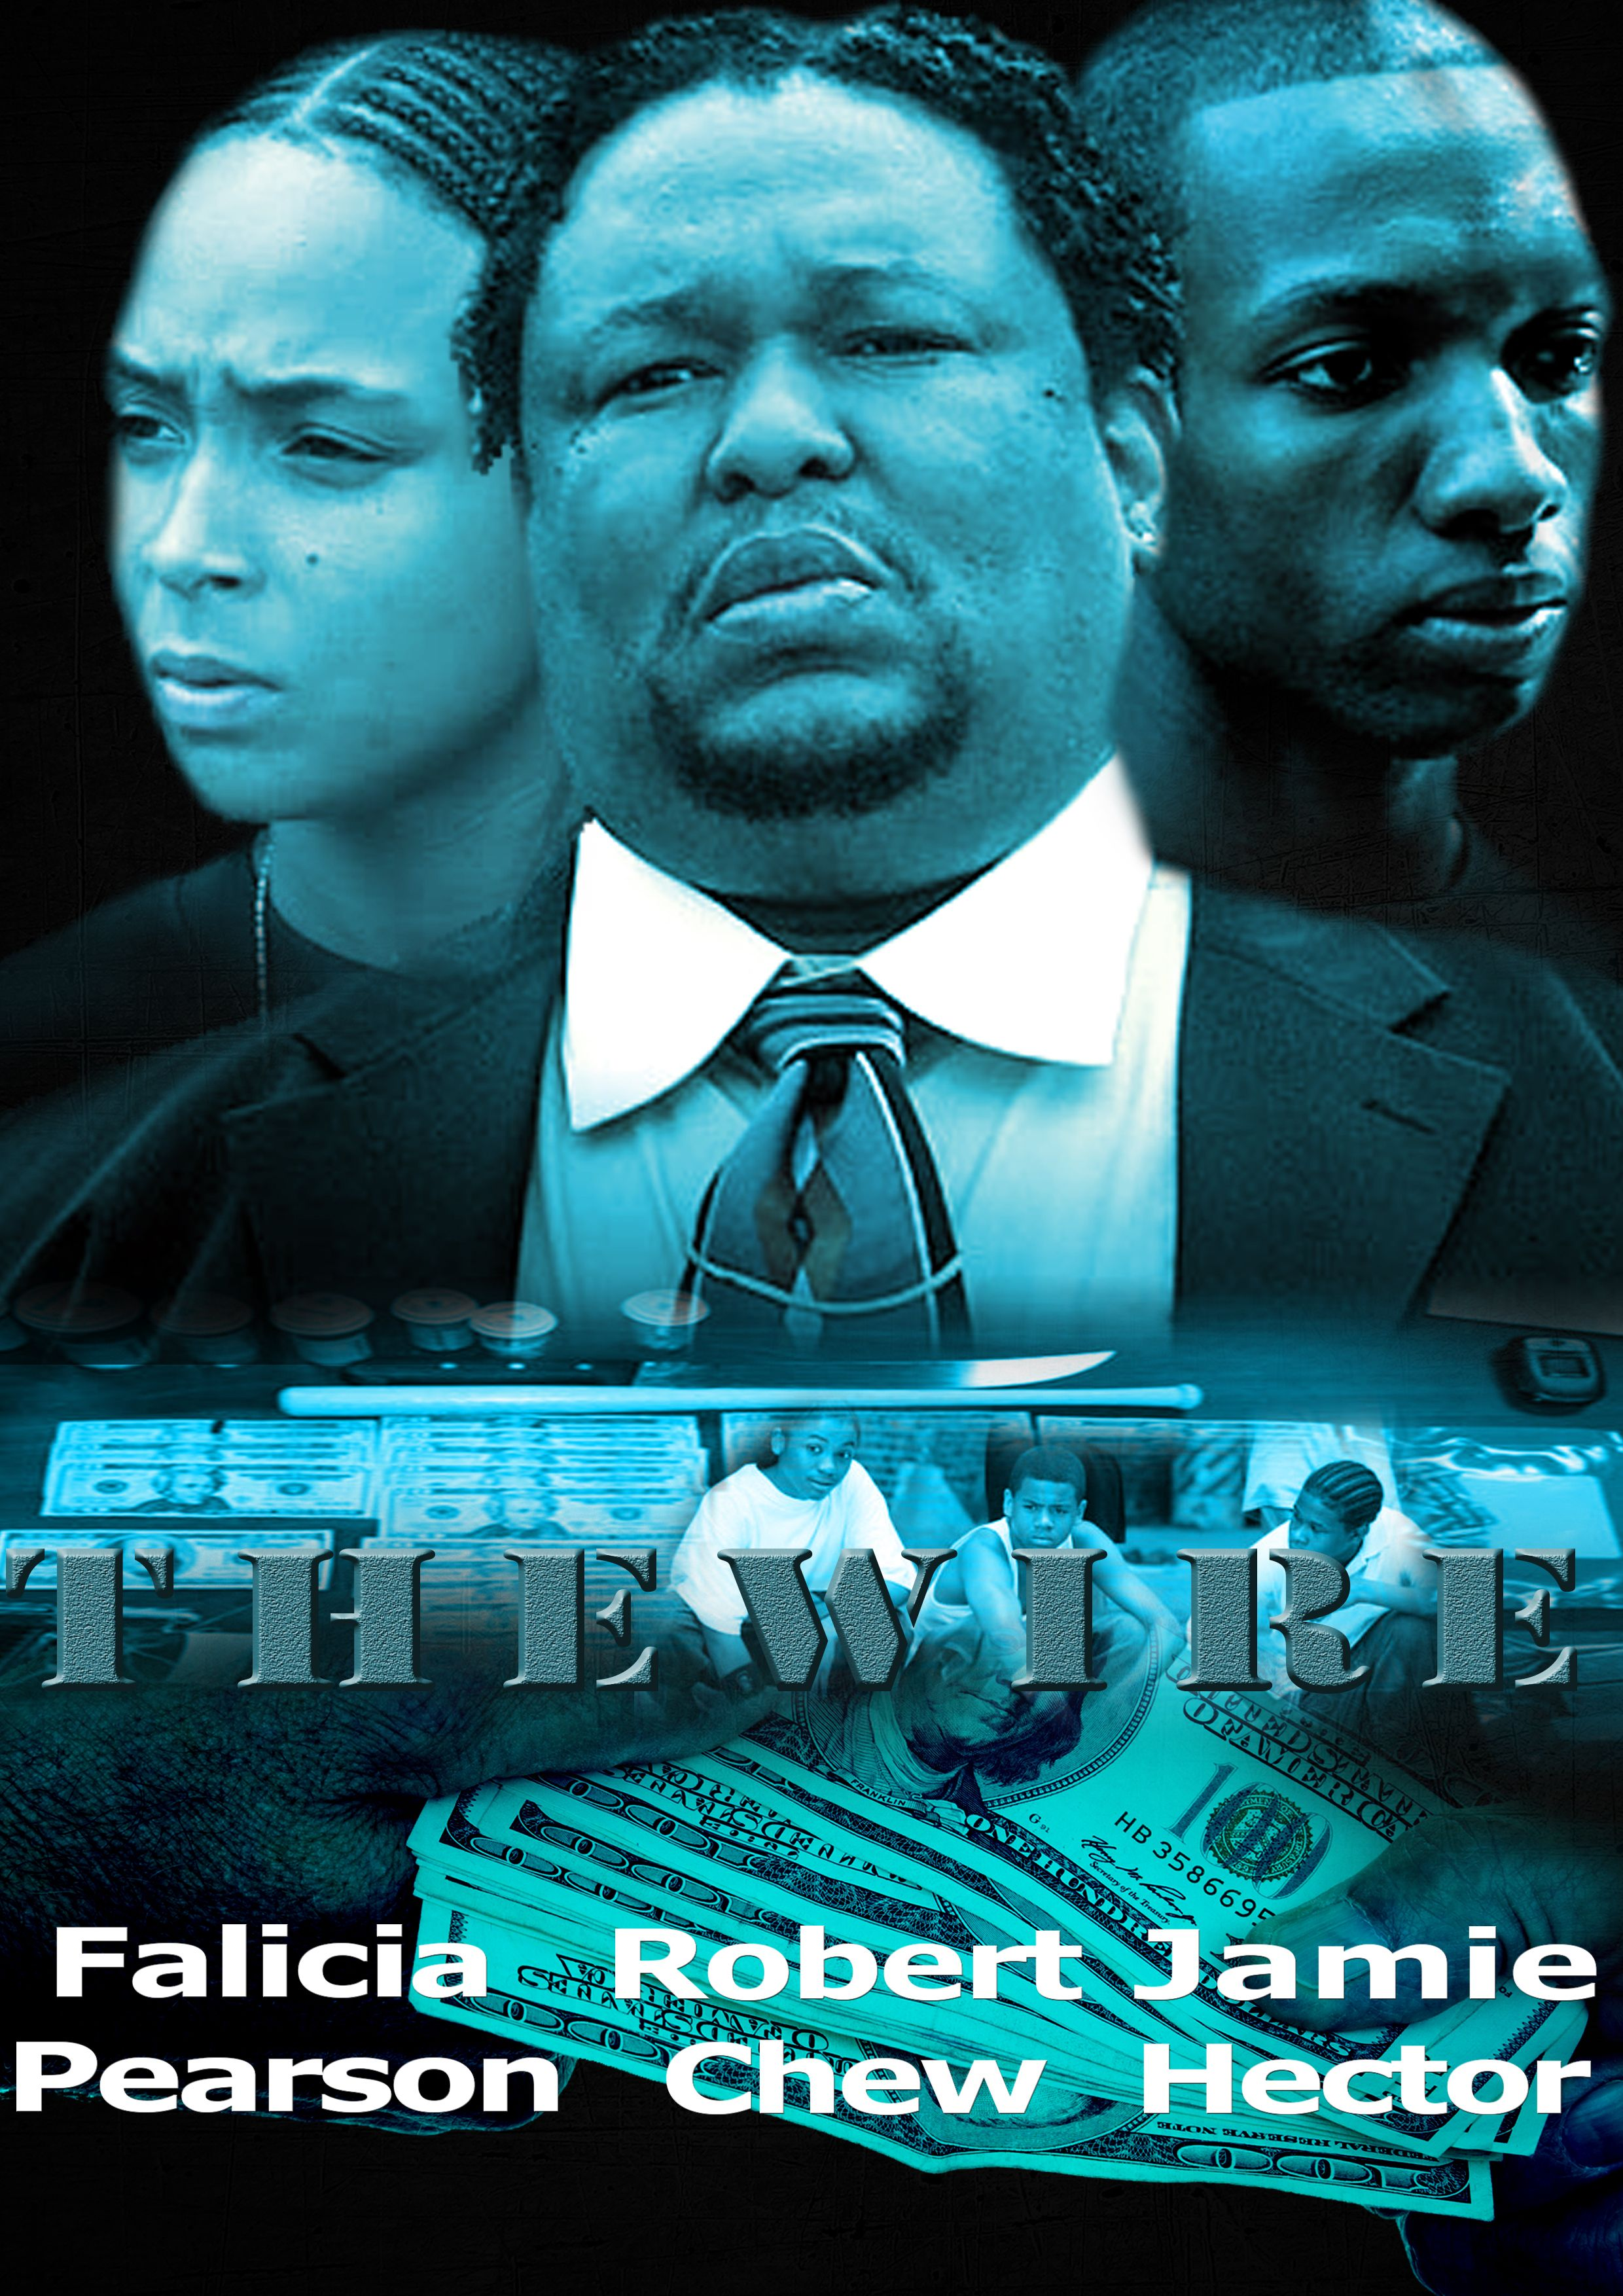 This a movie poster that I created (The Wire) | Photoshop Artwork ...